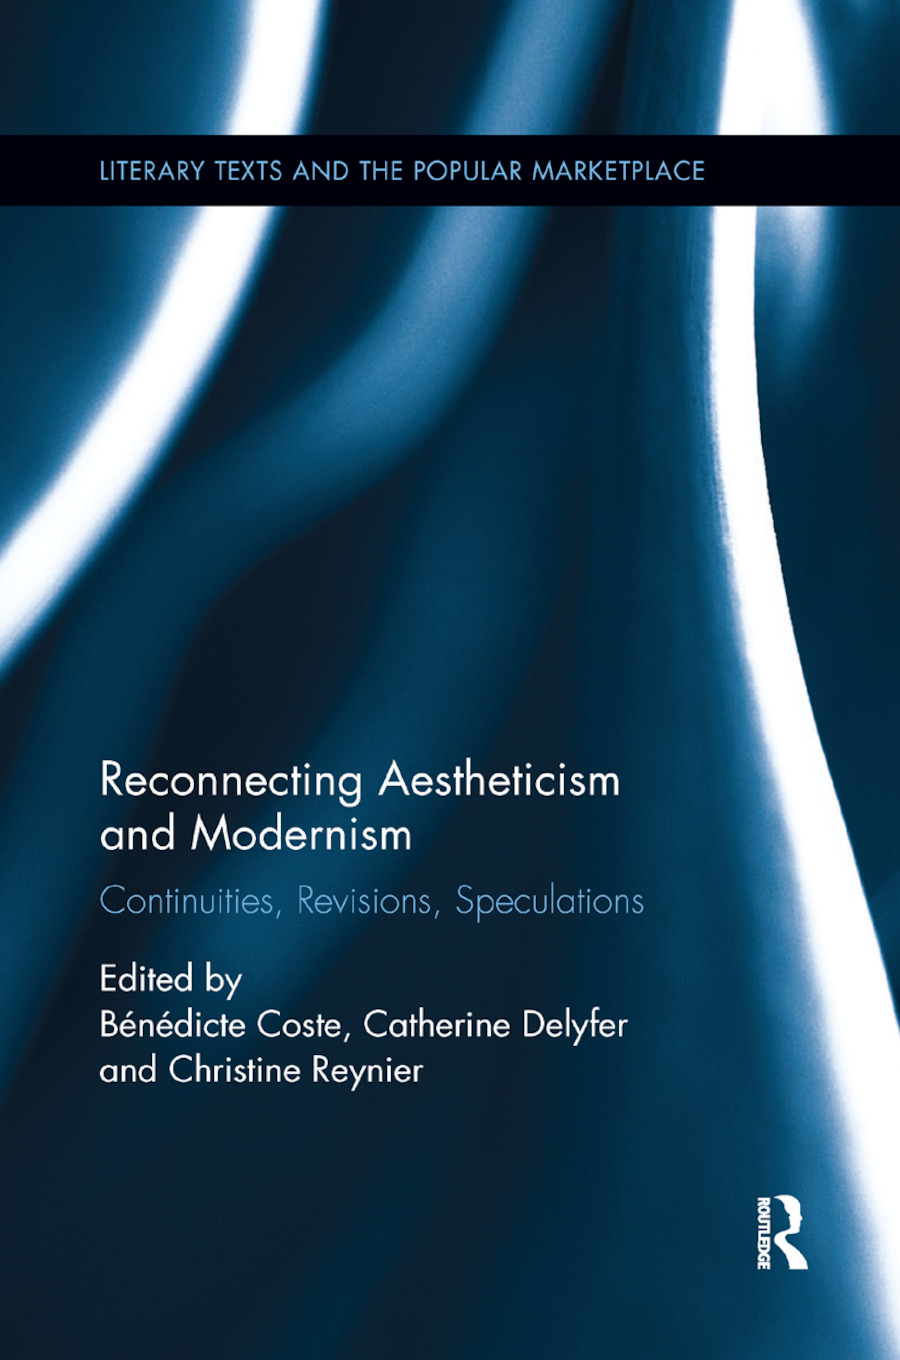 Reconnecting Aestheticism and Modernism: Continuities, Revisions, Speculations, 1st Edition (Paperback) book cover